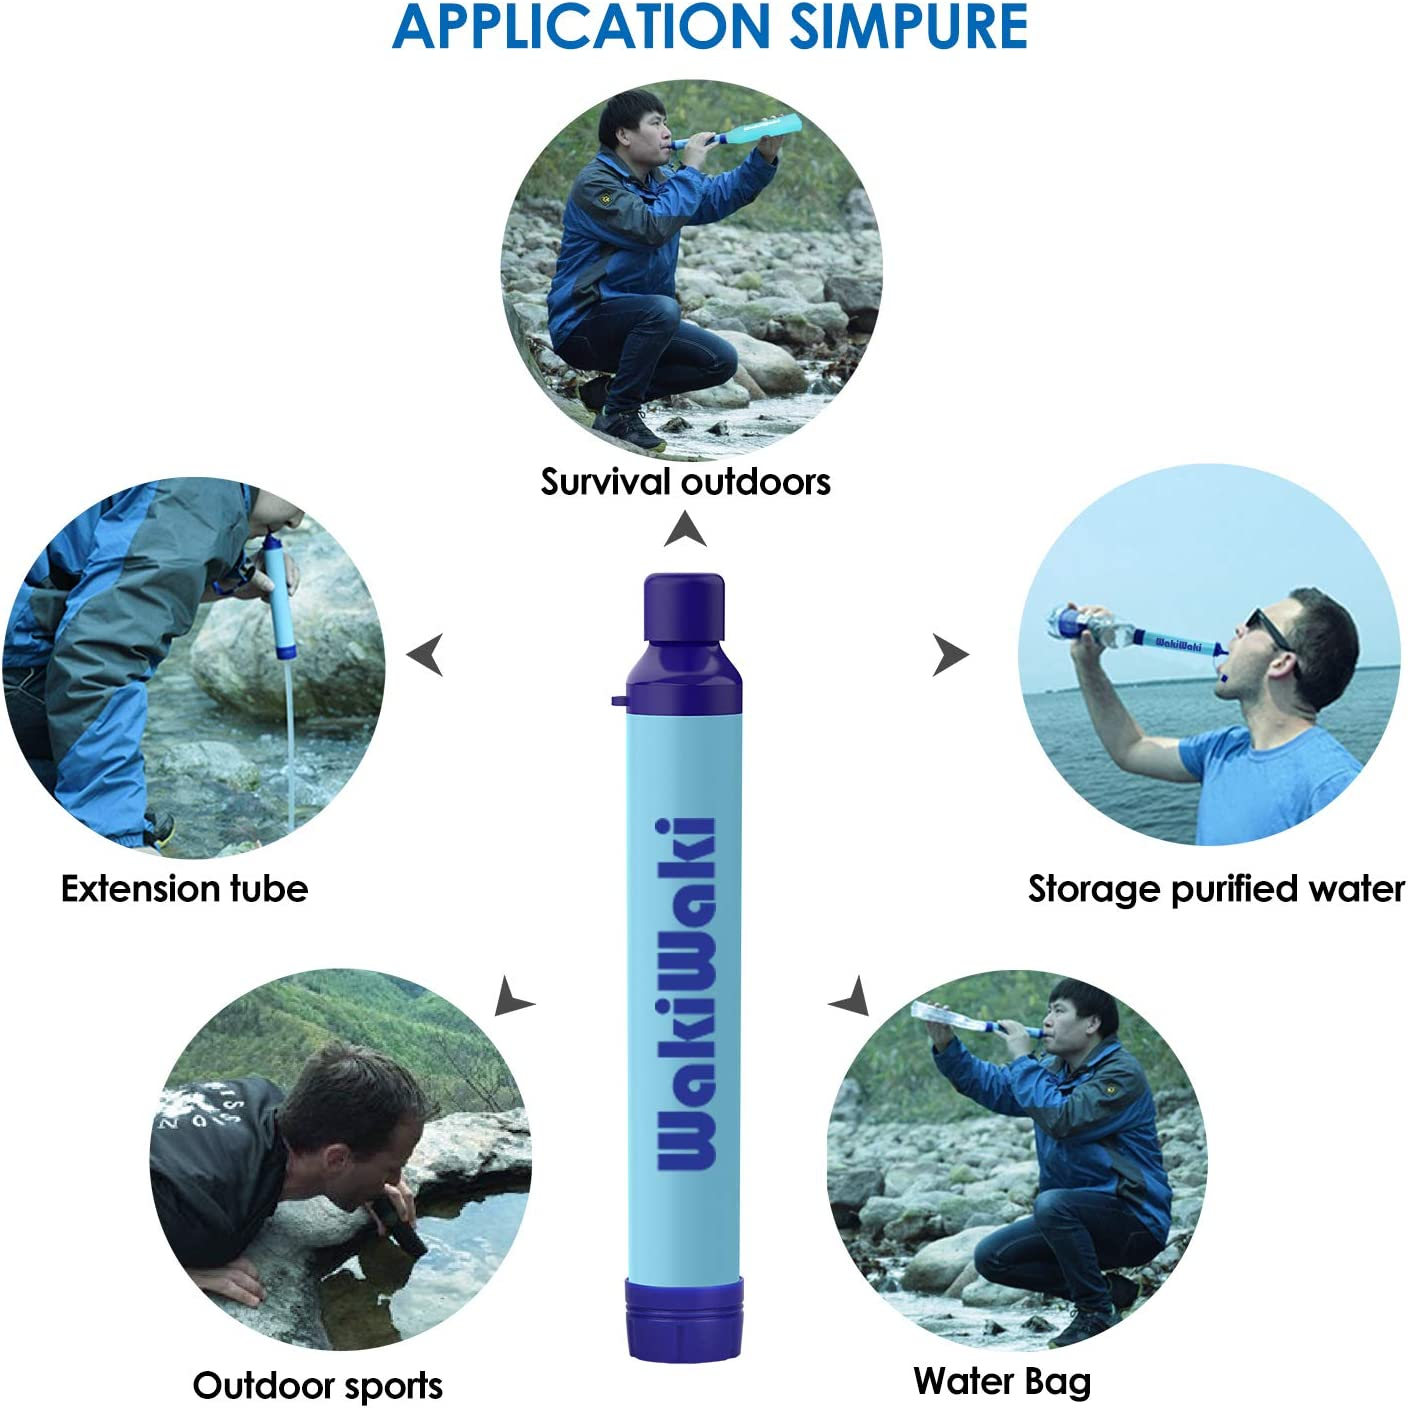 BPA Free Portable Water Purifier with 500ml Foldable Water Bottle Outdoor Survival Gear for Camping Hiking and Emergency SimPure Water Filter Straw